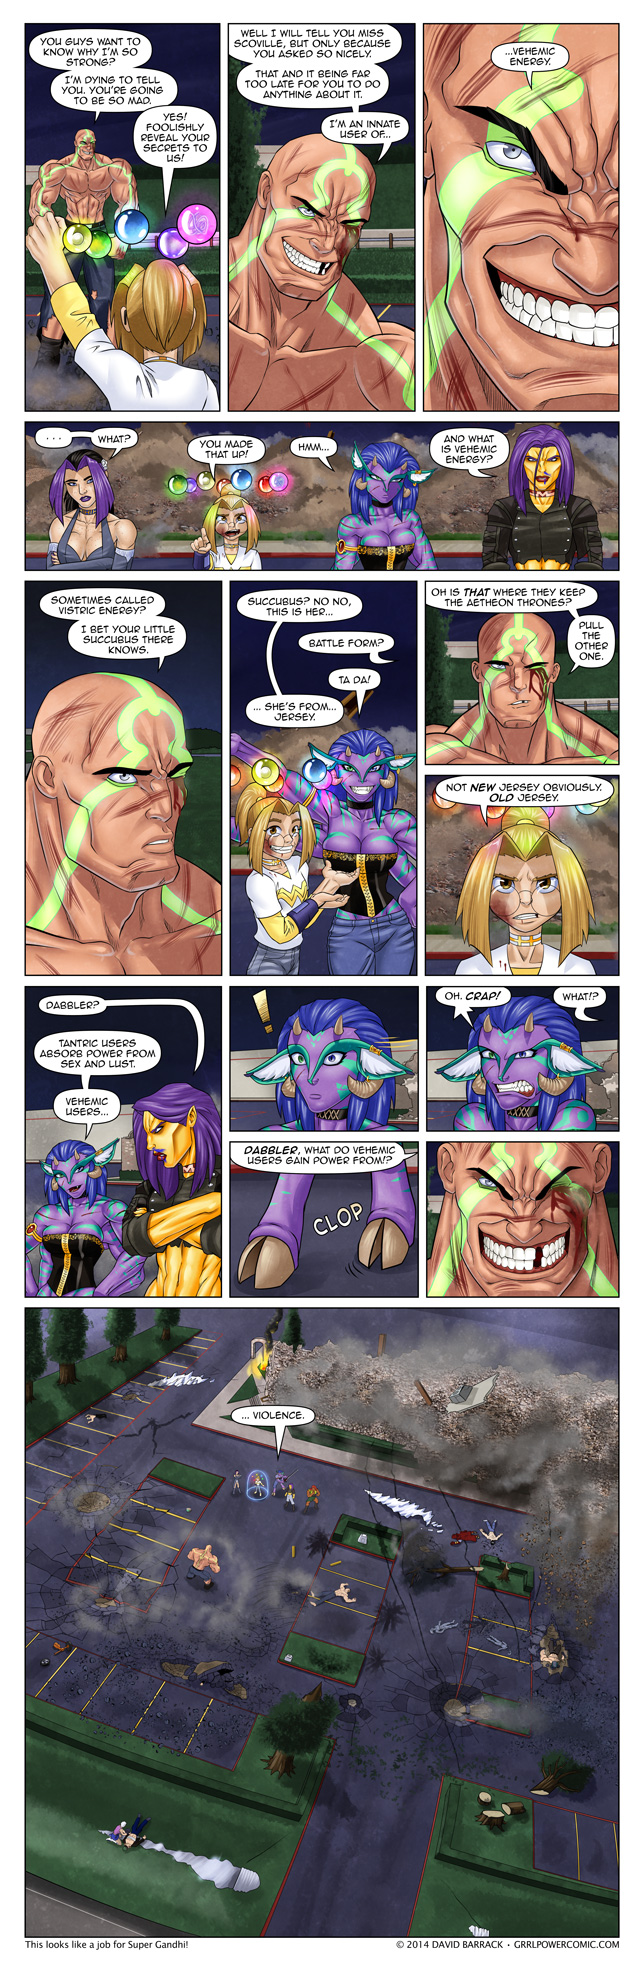 Grrl Power #264 – The team receives some bad news -OR- Oh crap is right